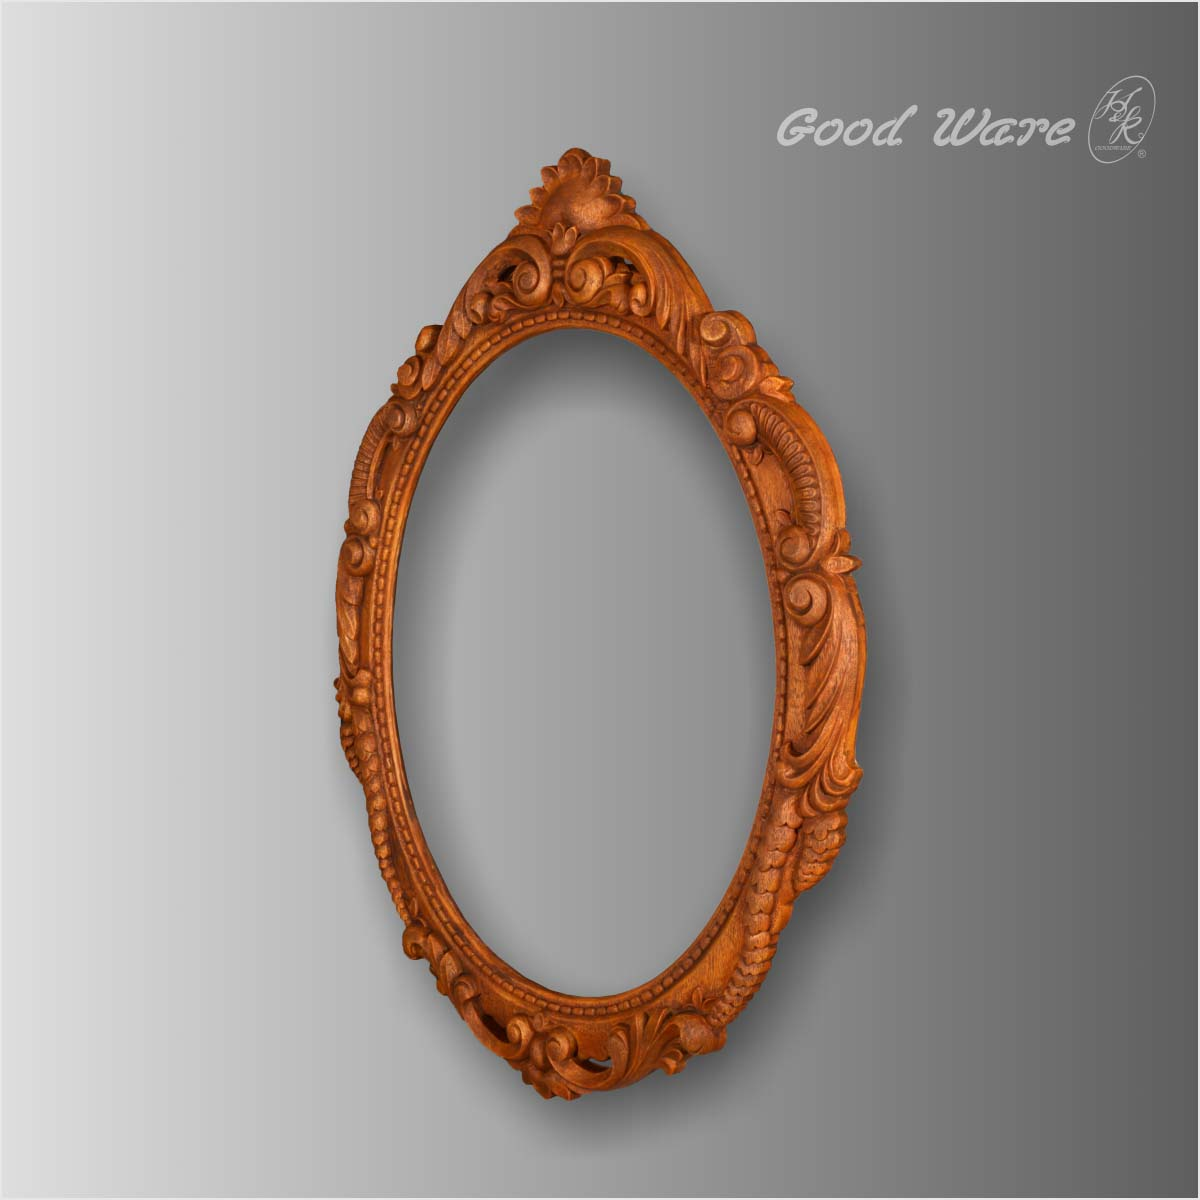 Faux wood decorative round mirror frame